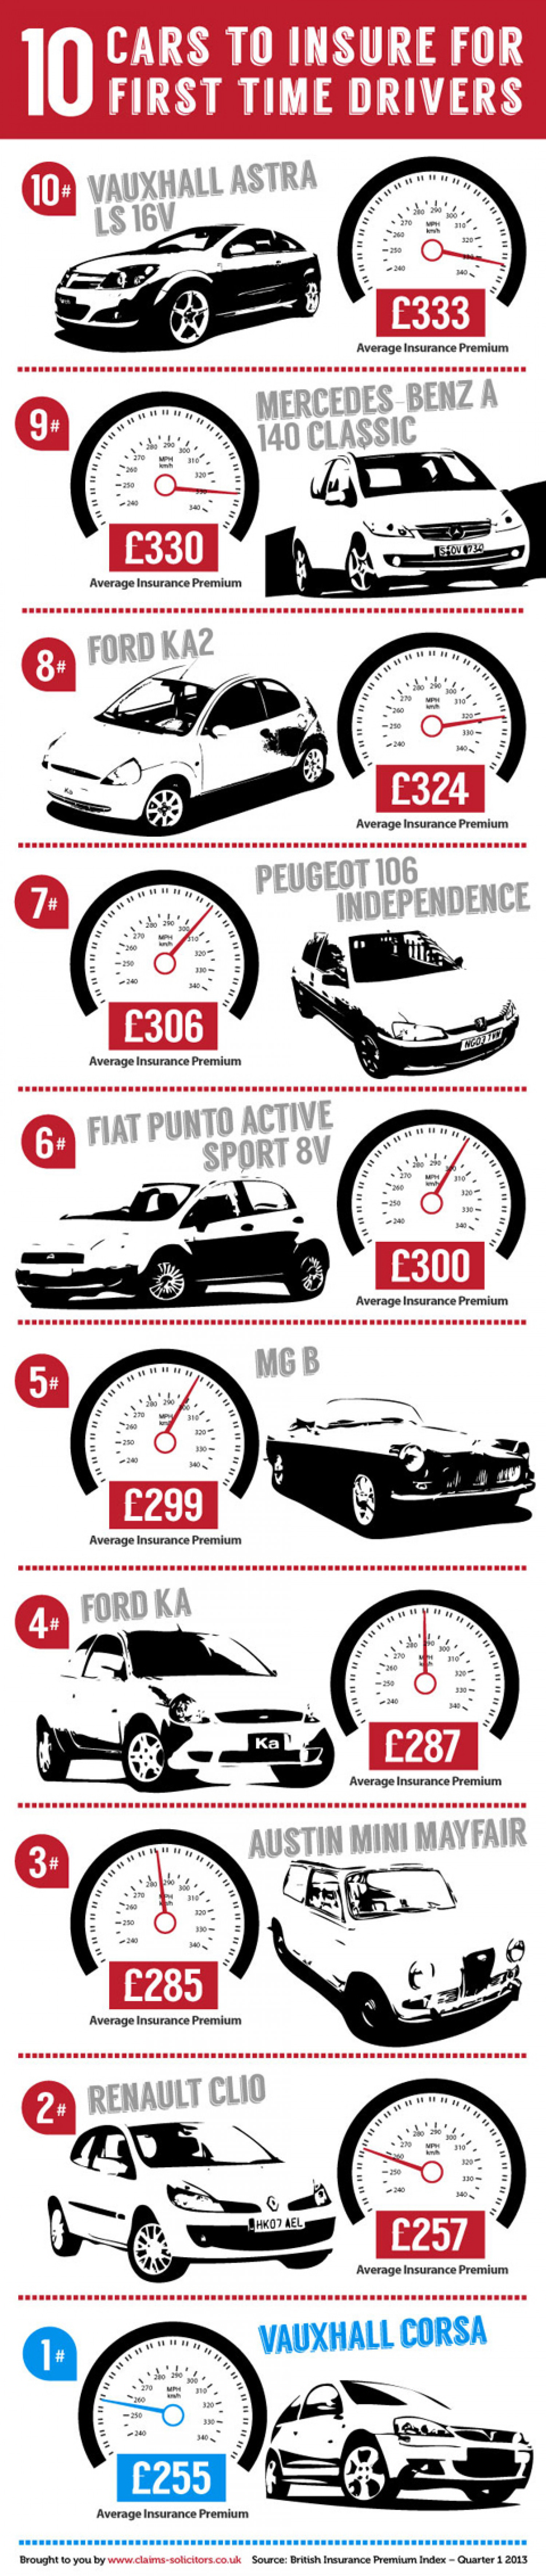 10 Cars to Insure for First Time Drivers Infographic